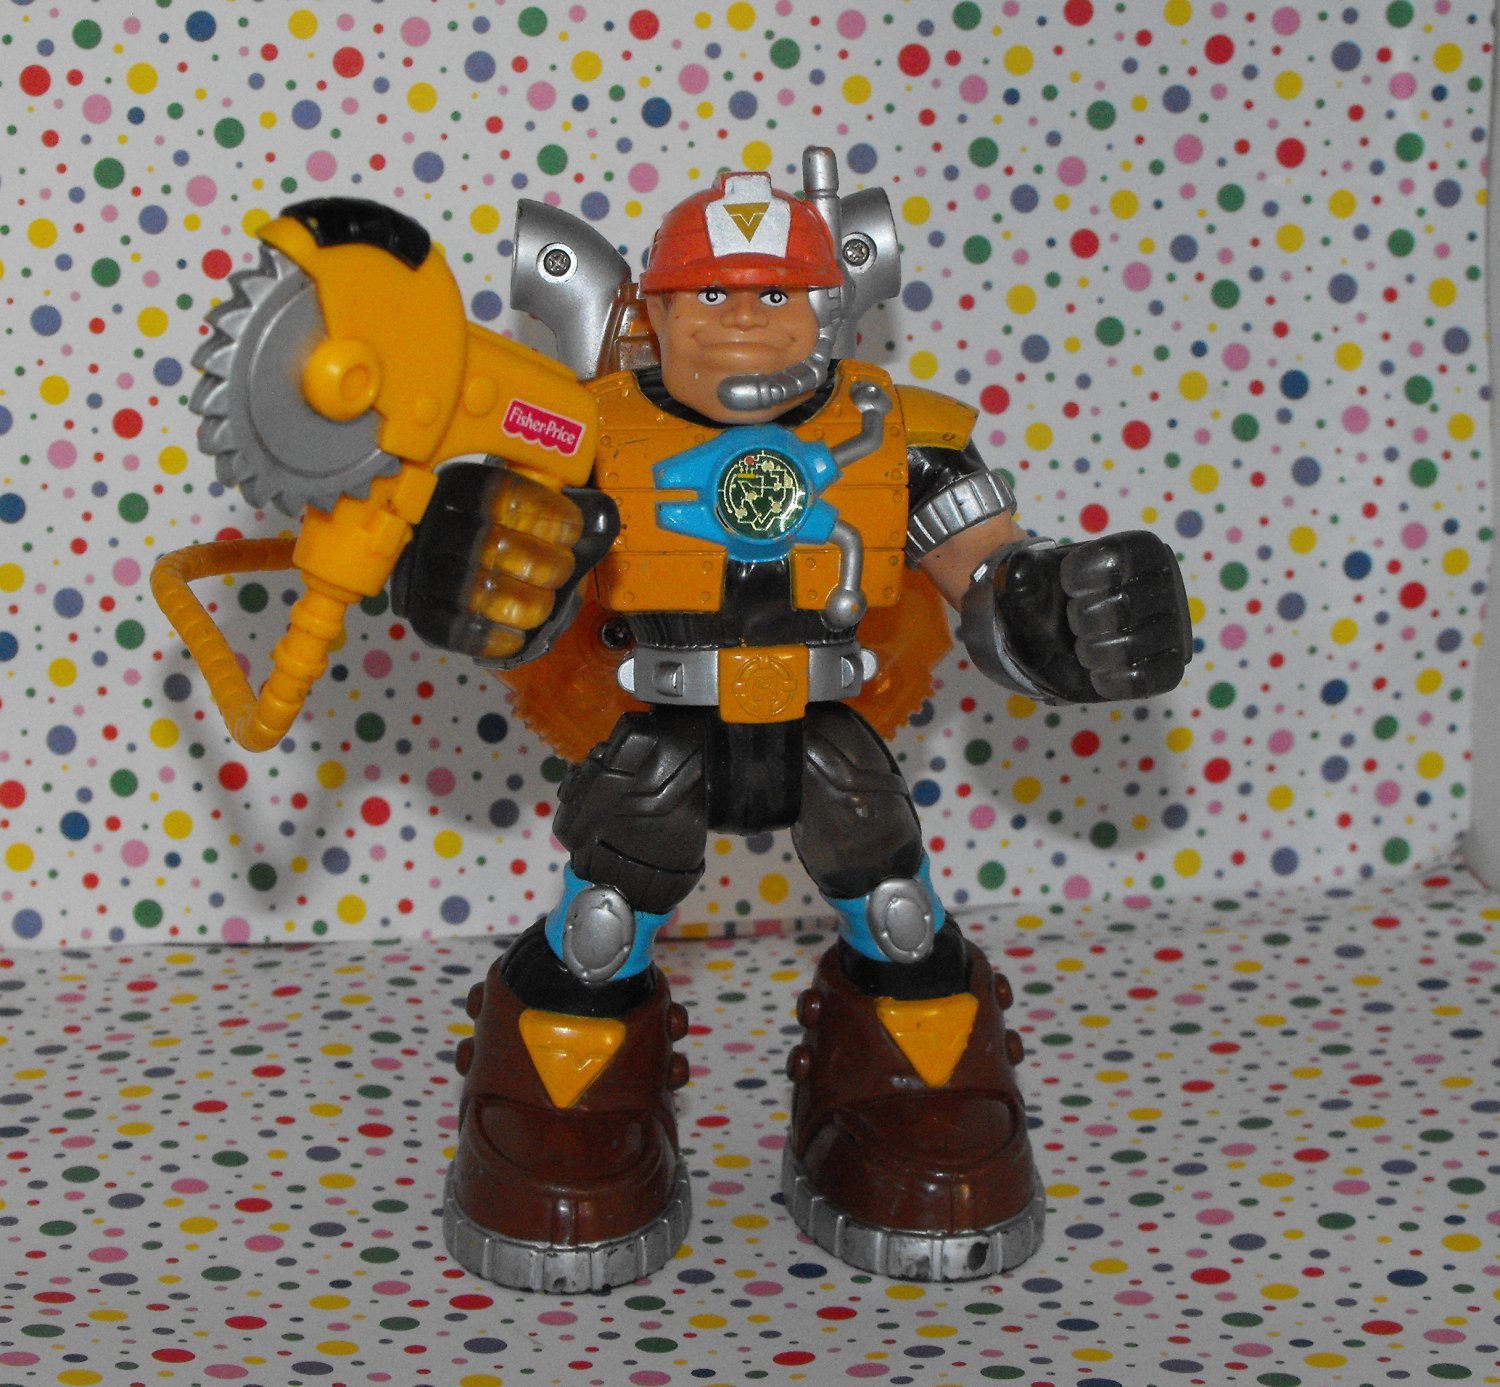 Fisher Price Rescue Heroes Voice Tech Jack Hammer Construction Expert